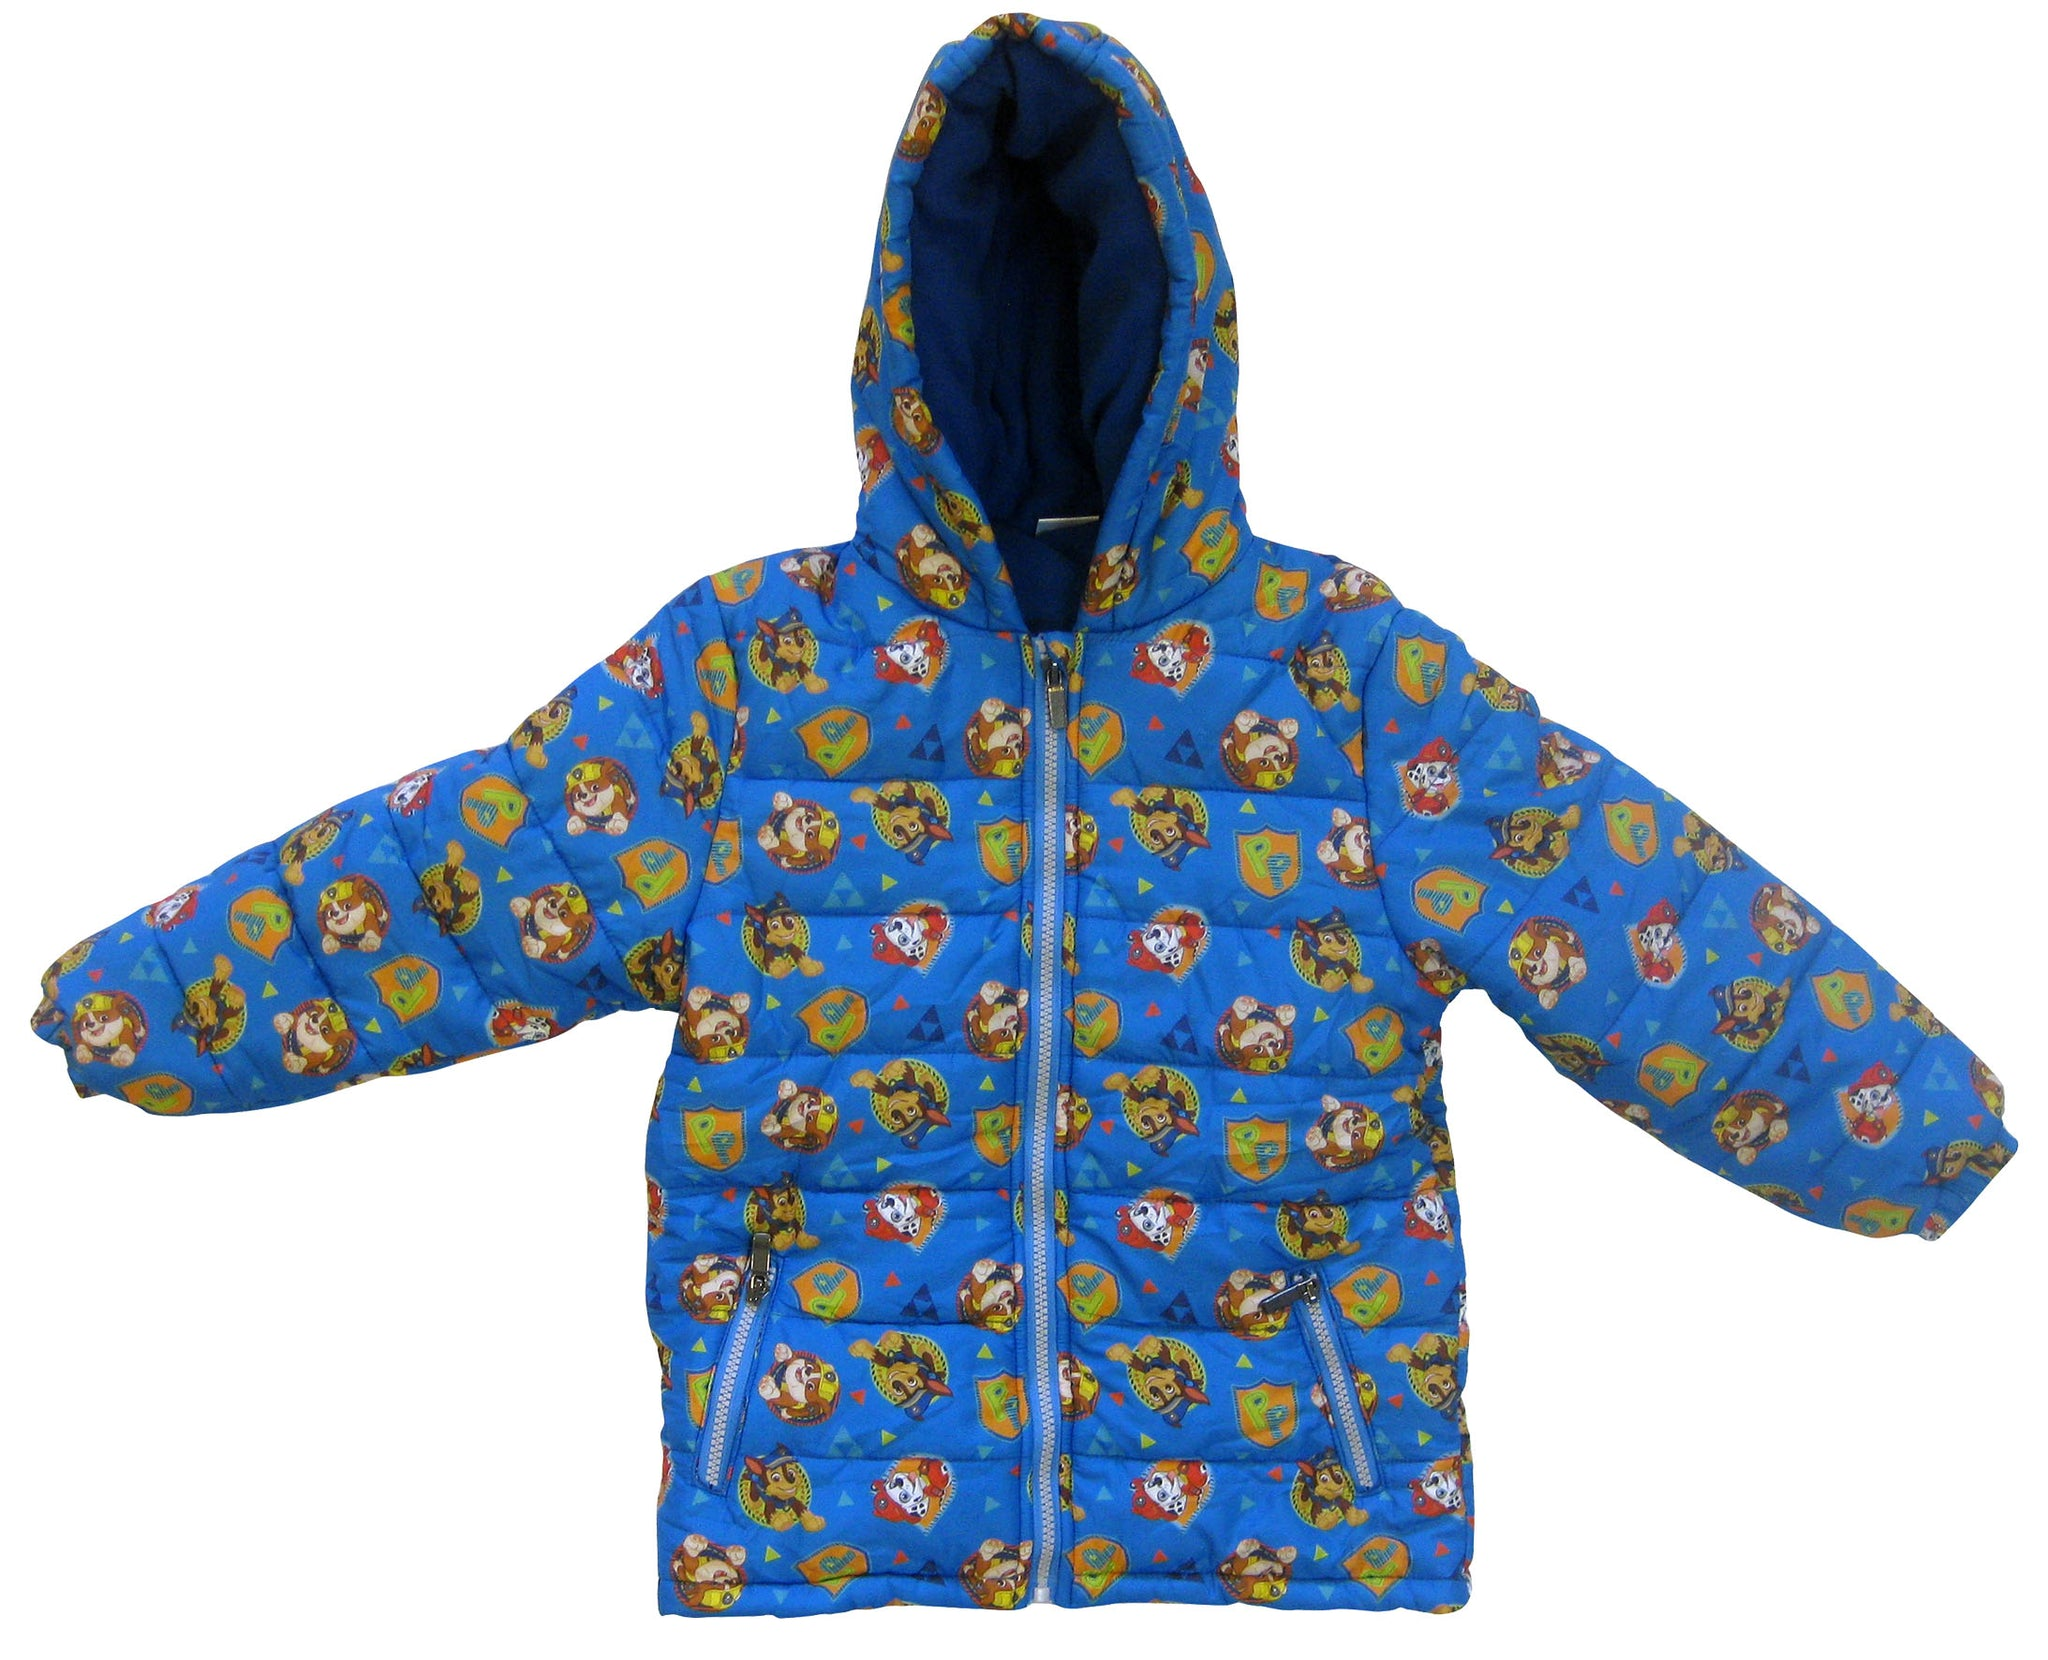 Paw Patrol heroes and logo parka with inner fleece and hood